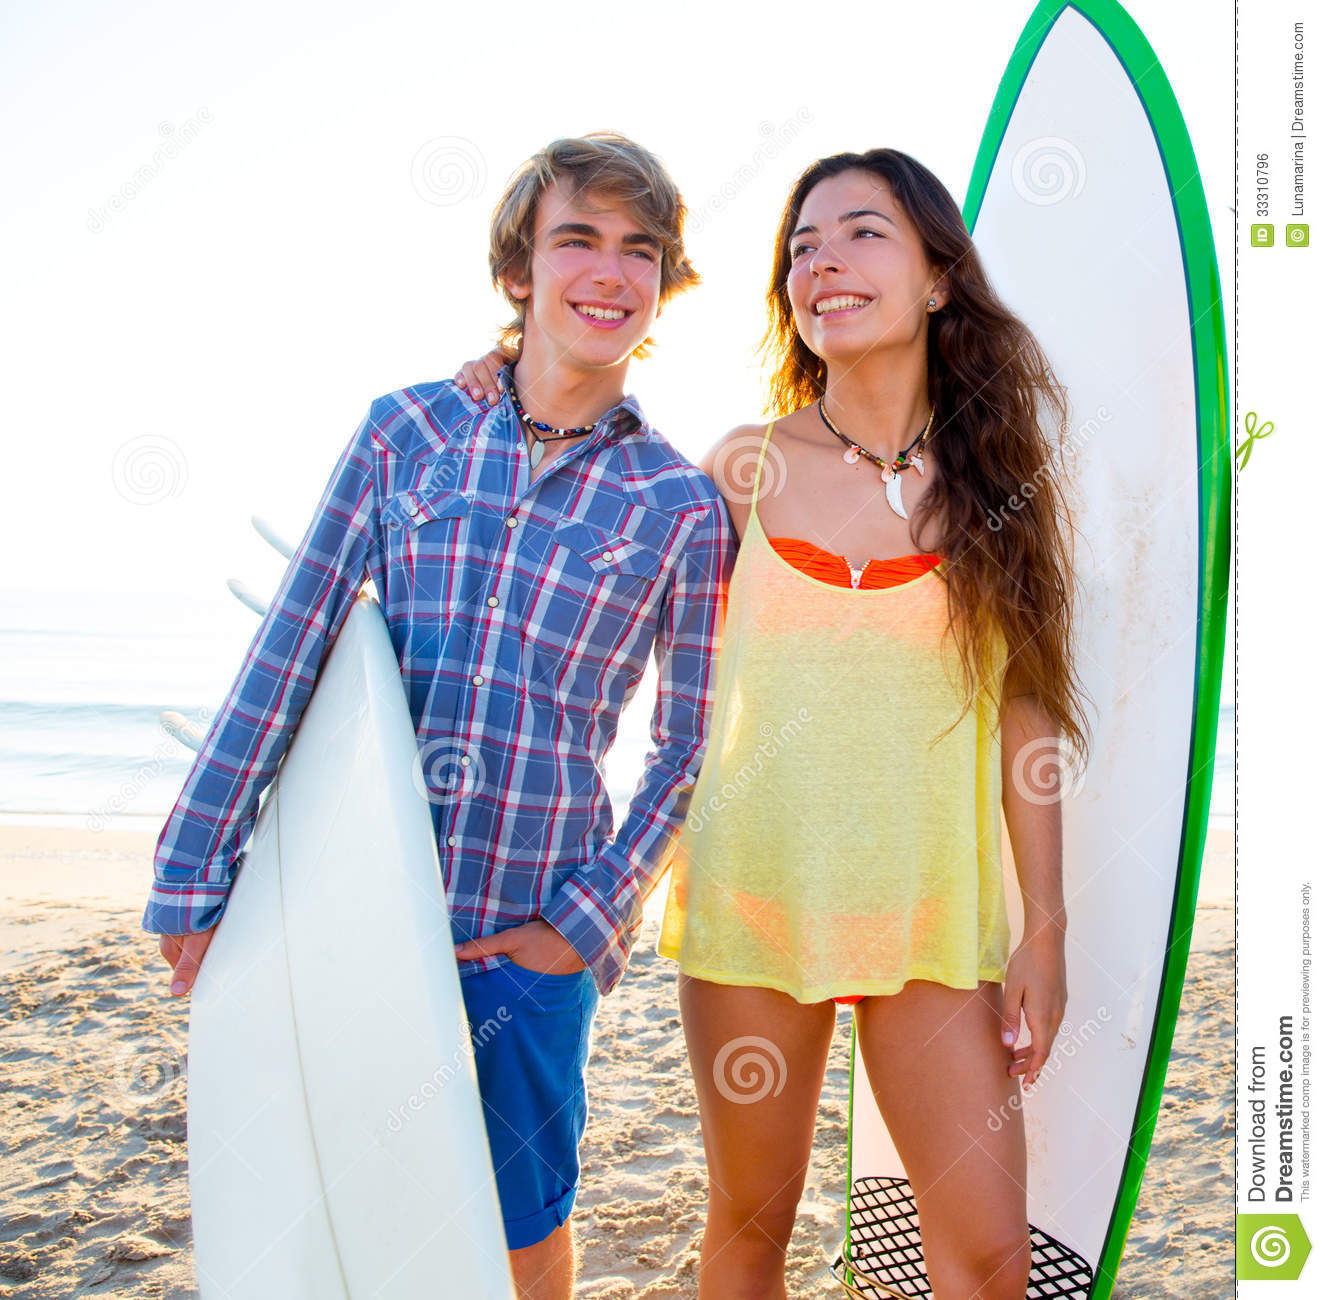 Teen Surfer Couple On Beach Shore With Surf Boards Stock